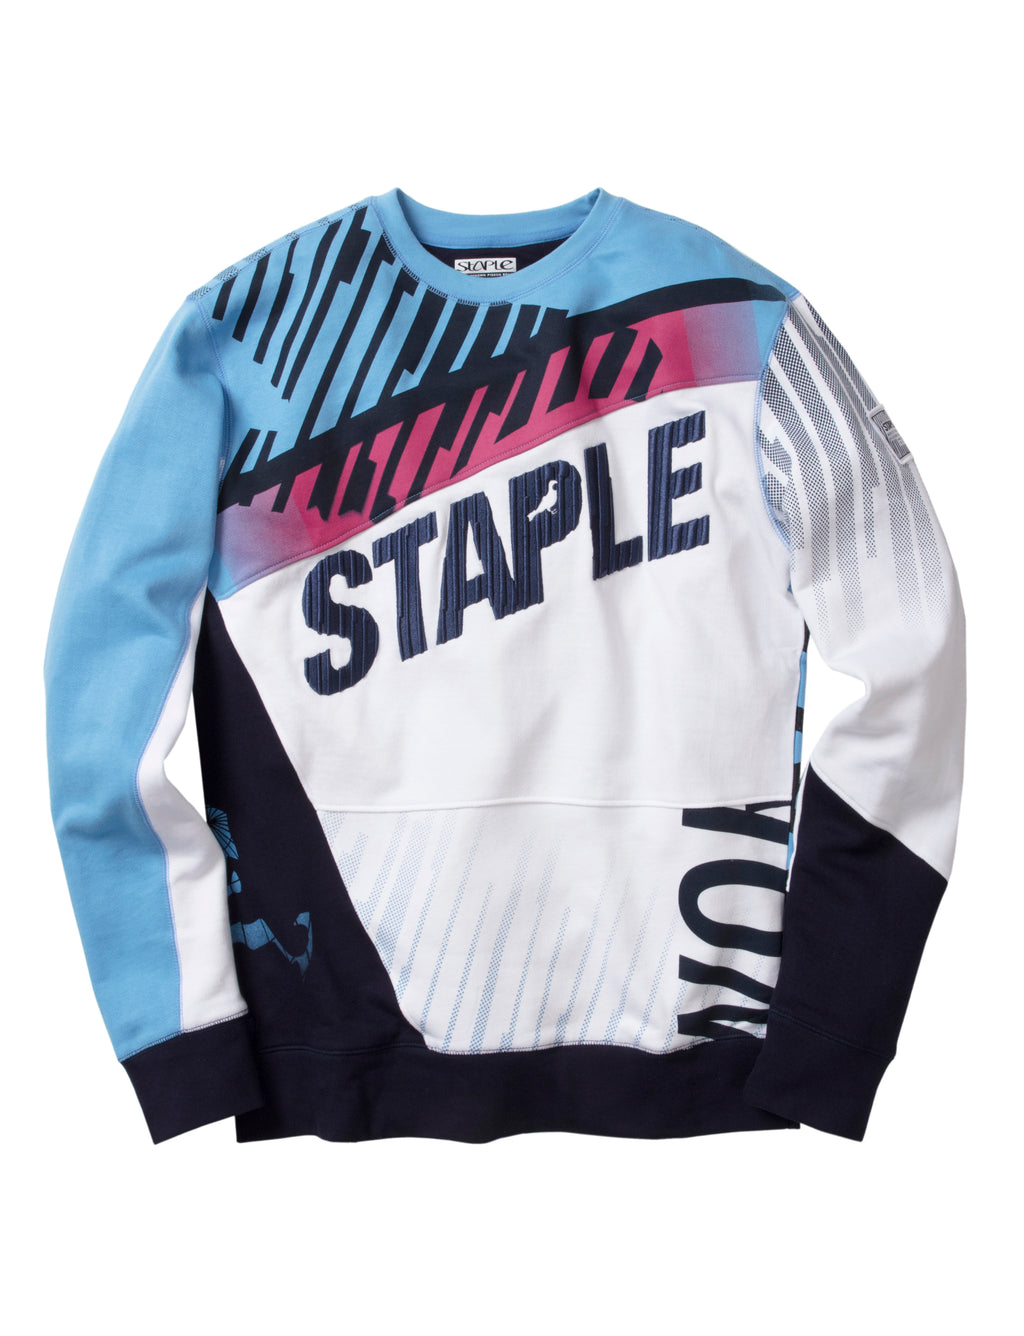 Crosscourt Crewneck - Sweatshirt | Staple Pigeon